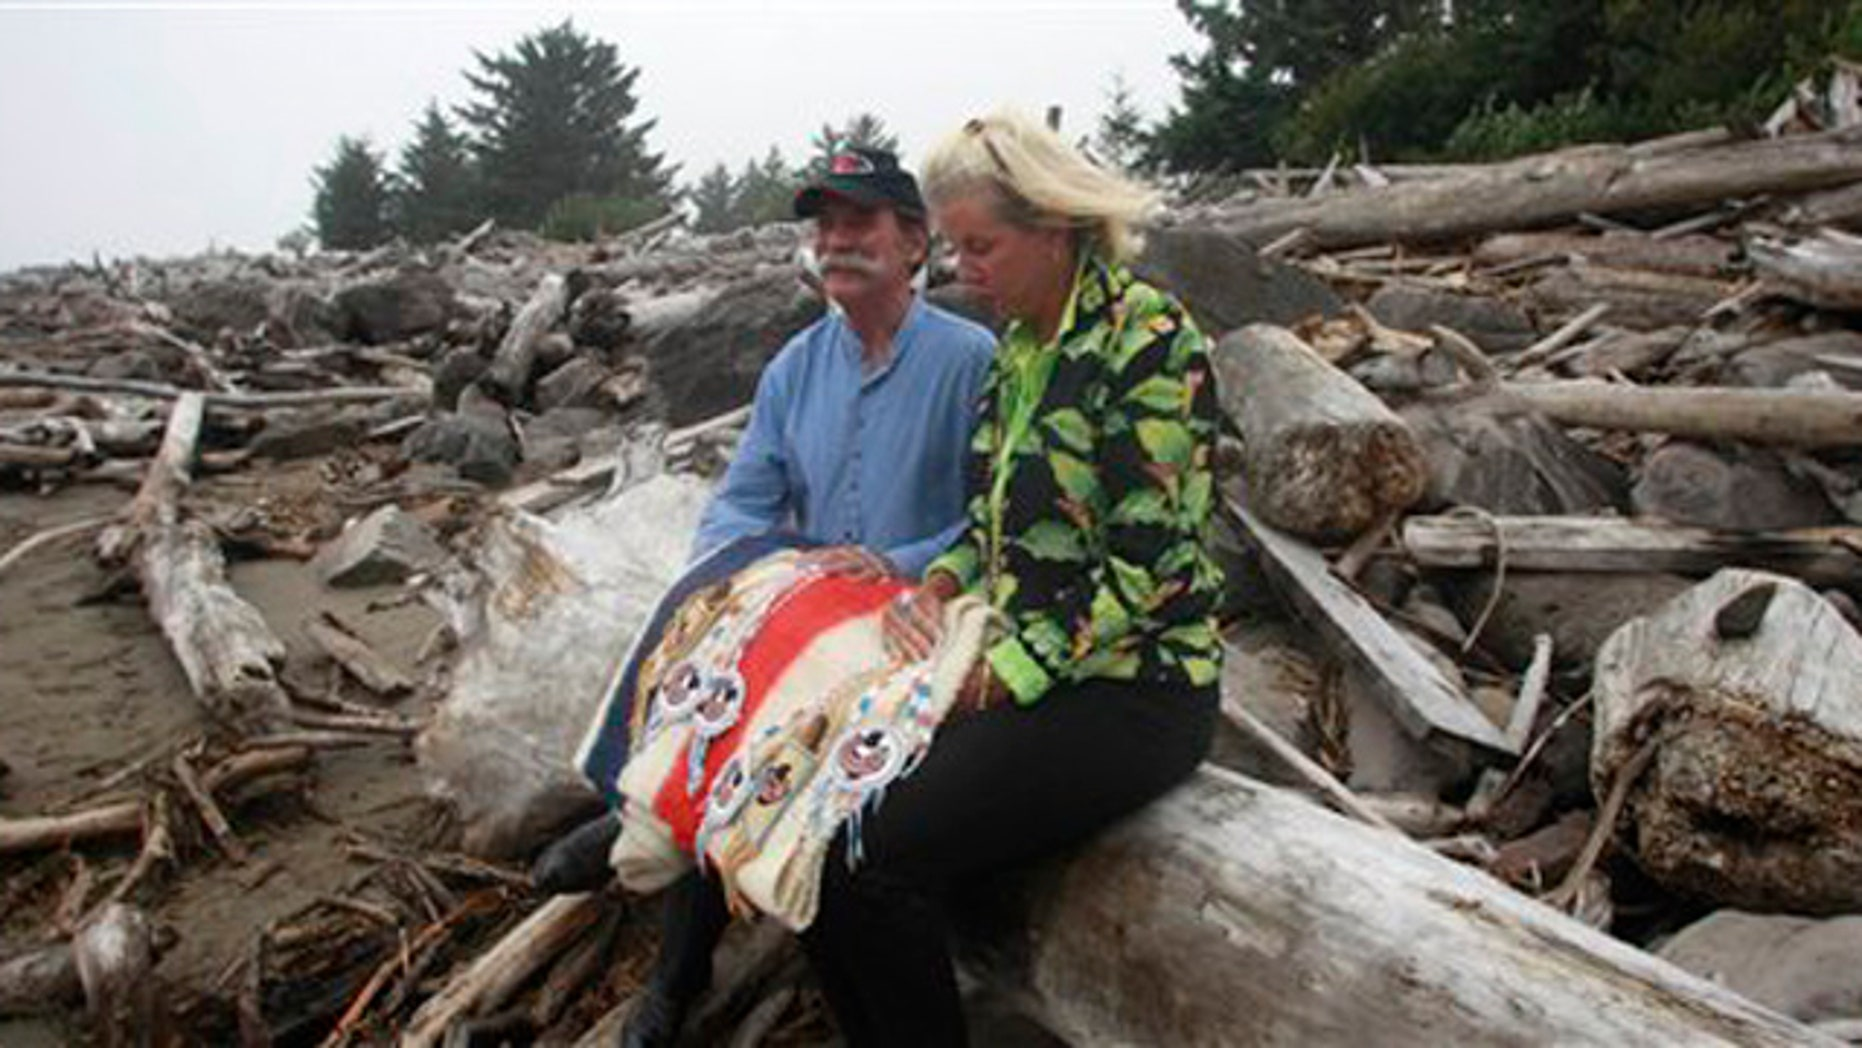 Sept. 22, 2011: William Clark's descendants hold gifts at Cape Disappointment State Park, near Ilwaco, Wash.